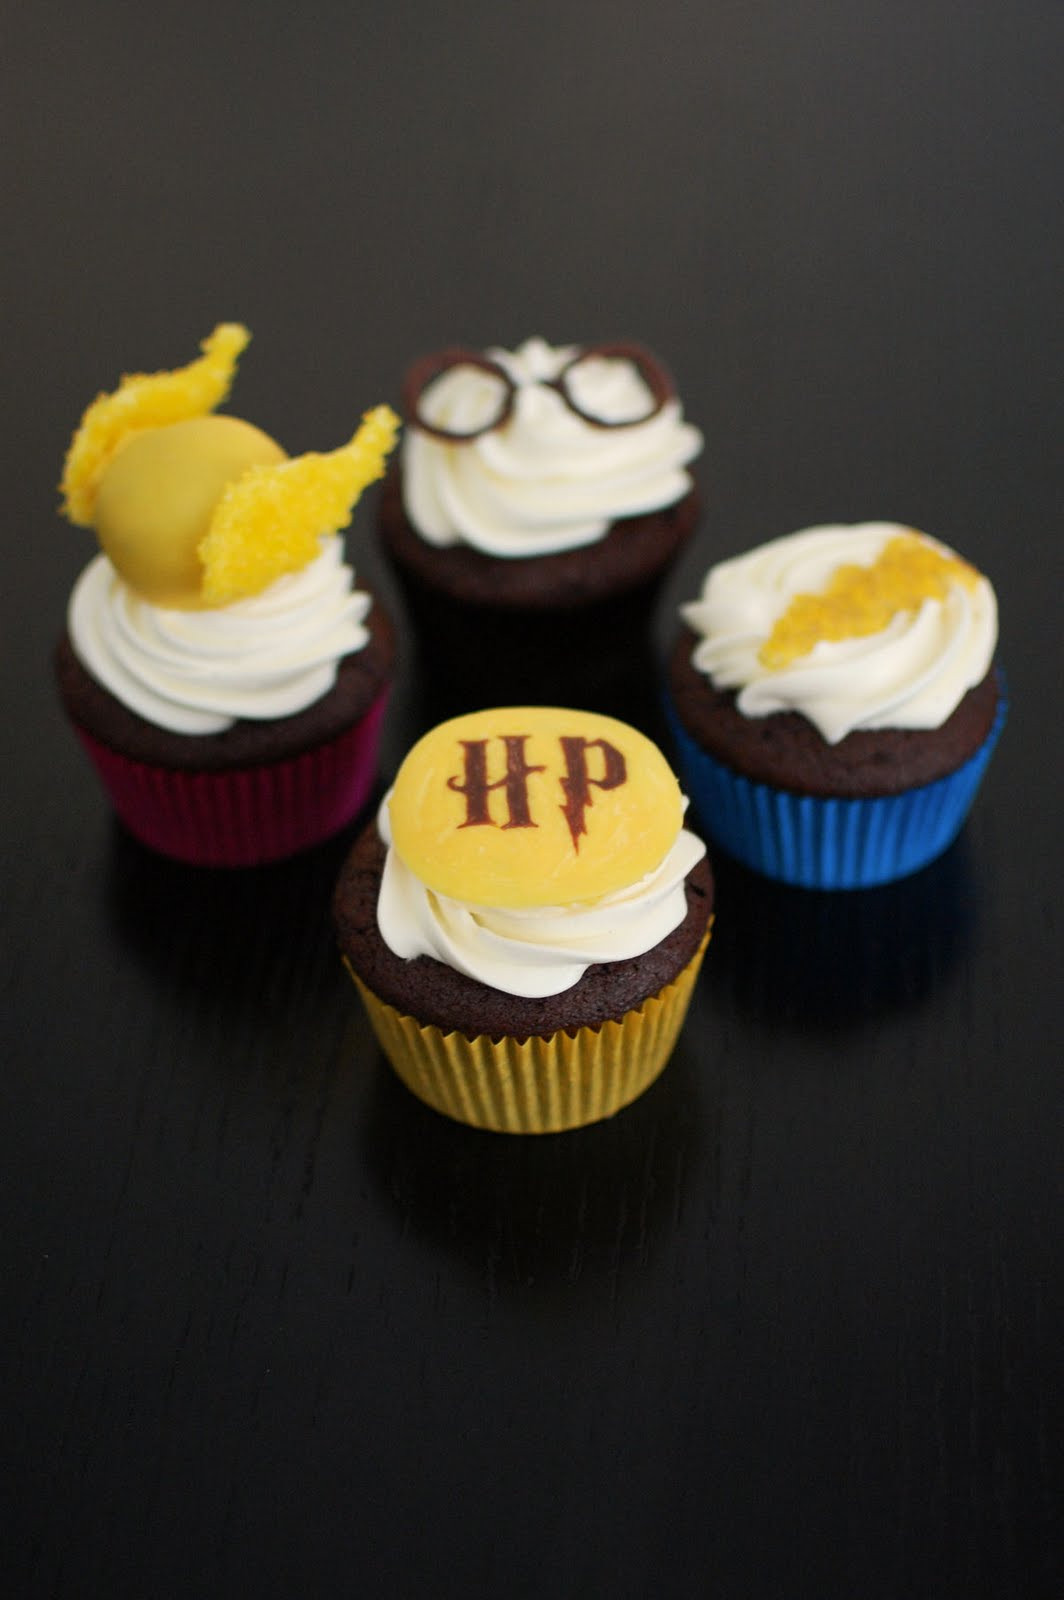 Harry Potter Cupcakes  More Harry Potter Cupcakes Including Golden Snitch